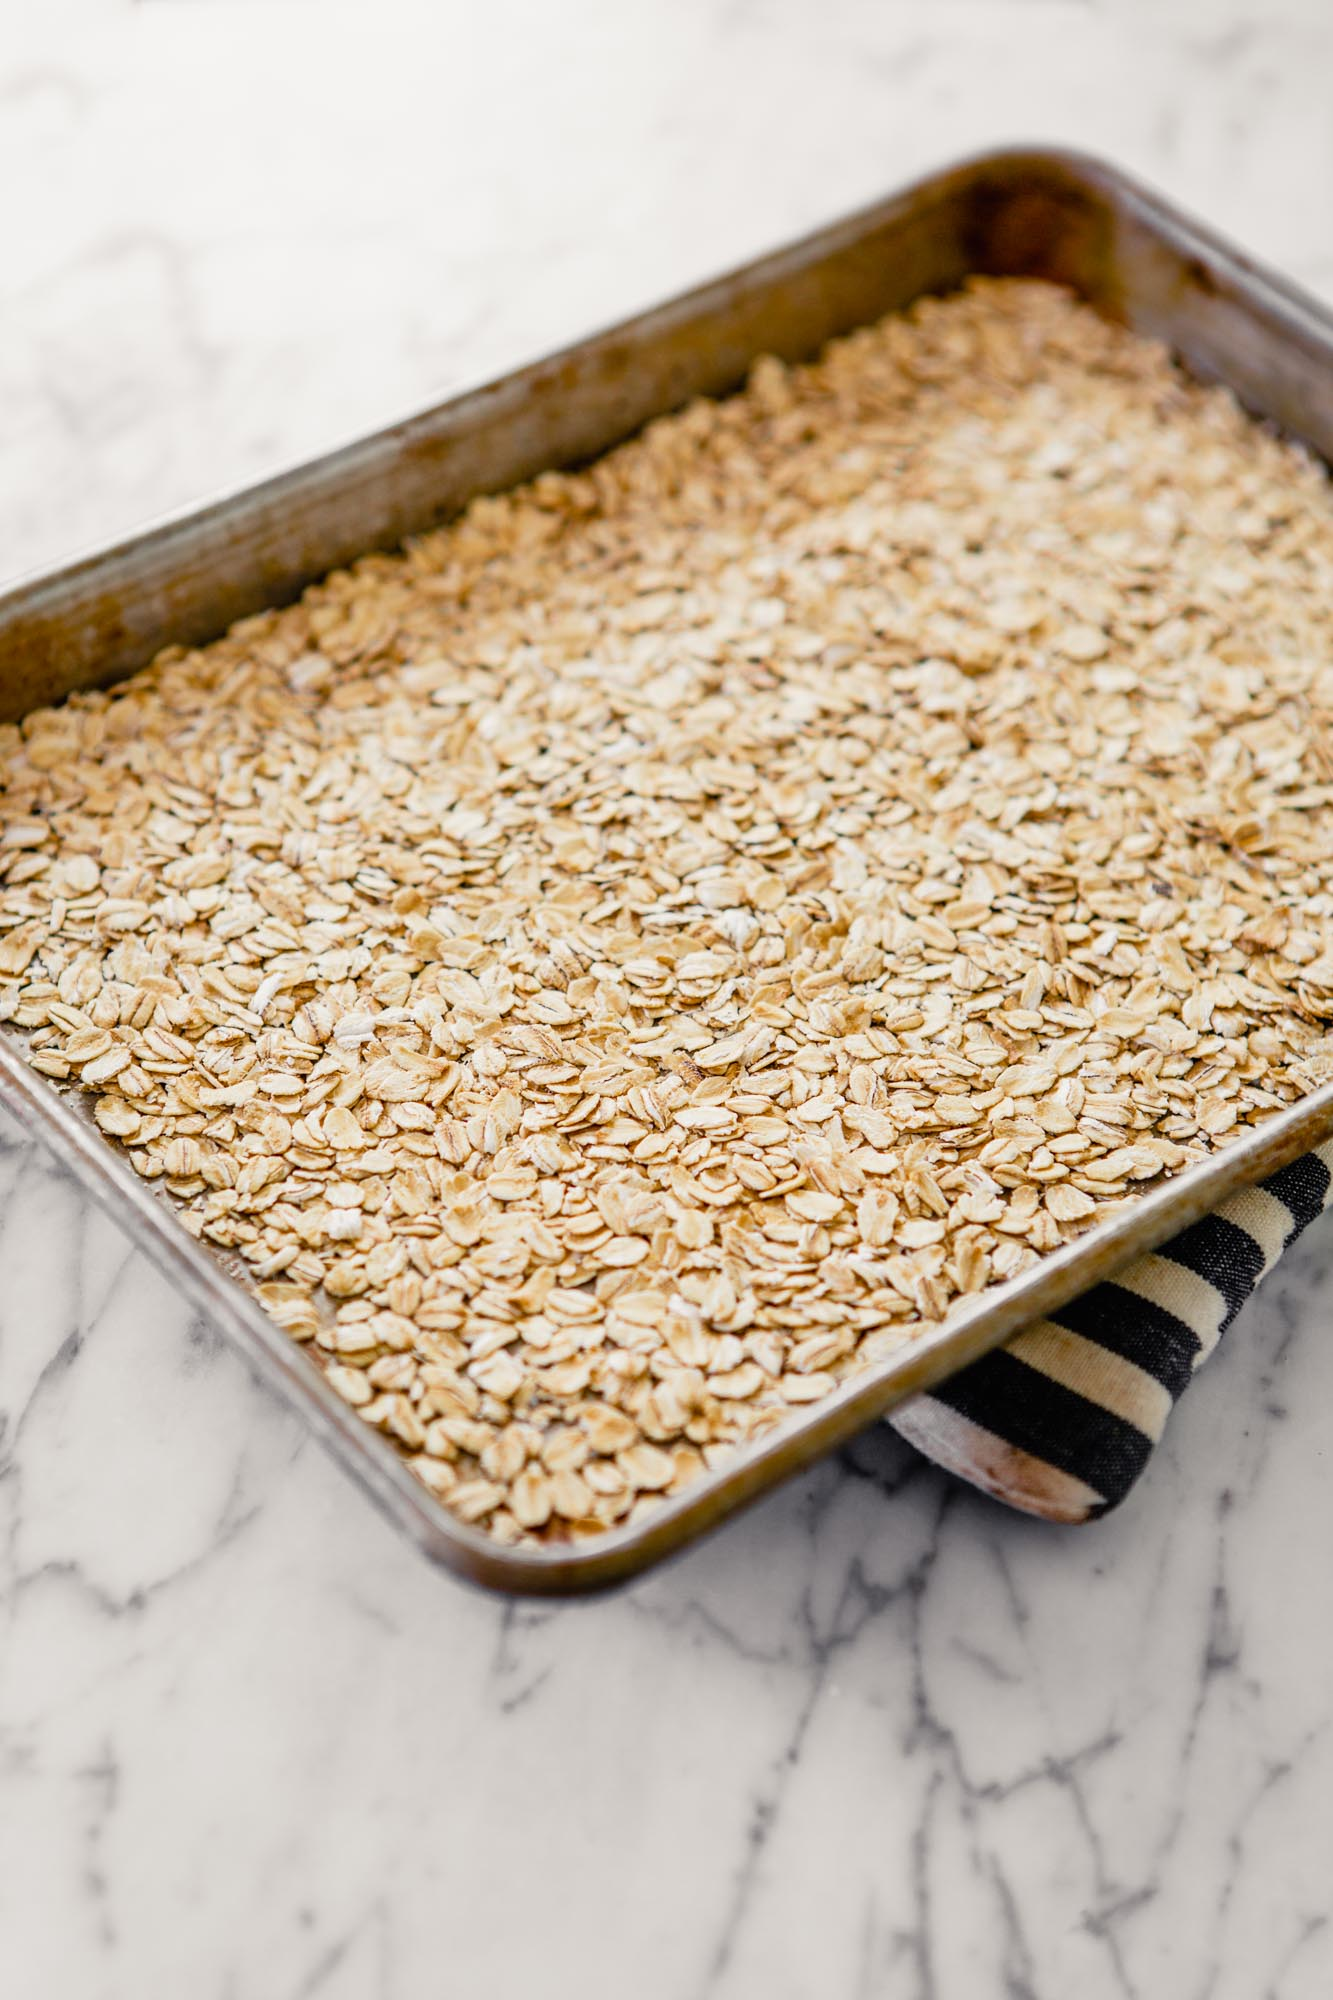 Photo of toasted oats on a baking sheet.